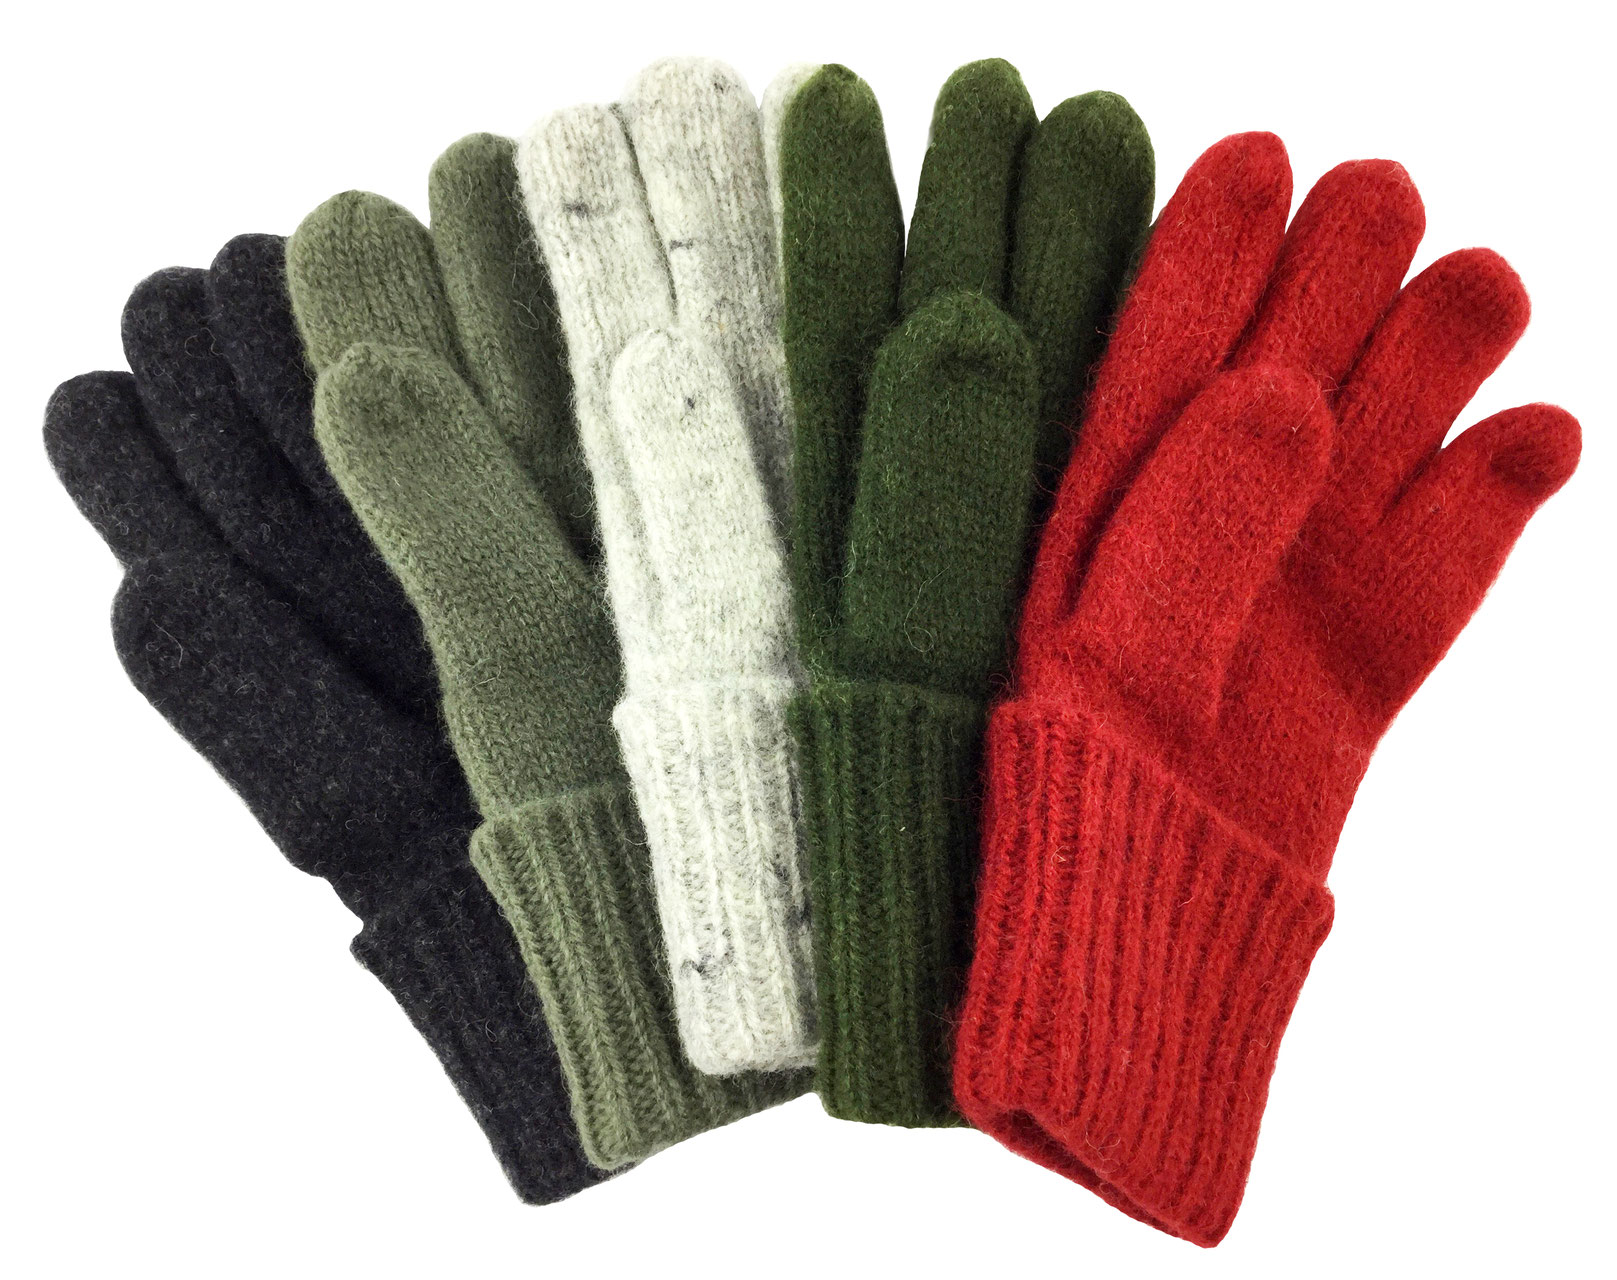 New Dachstein Woolwear Wool Gloves 2110 - Sweater Chalet PF16